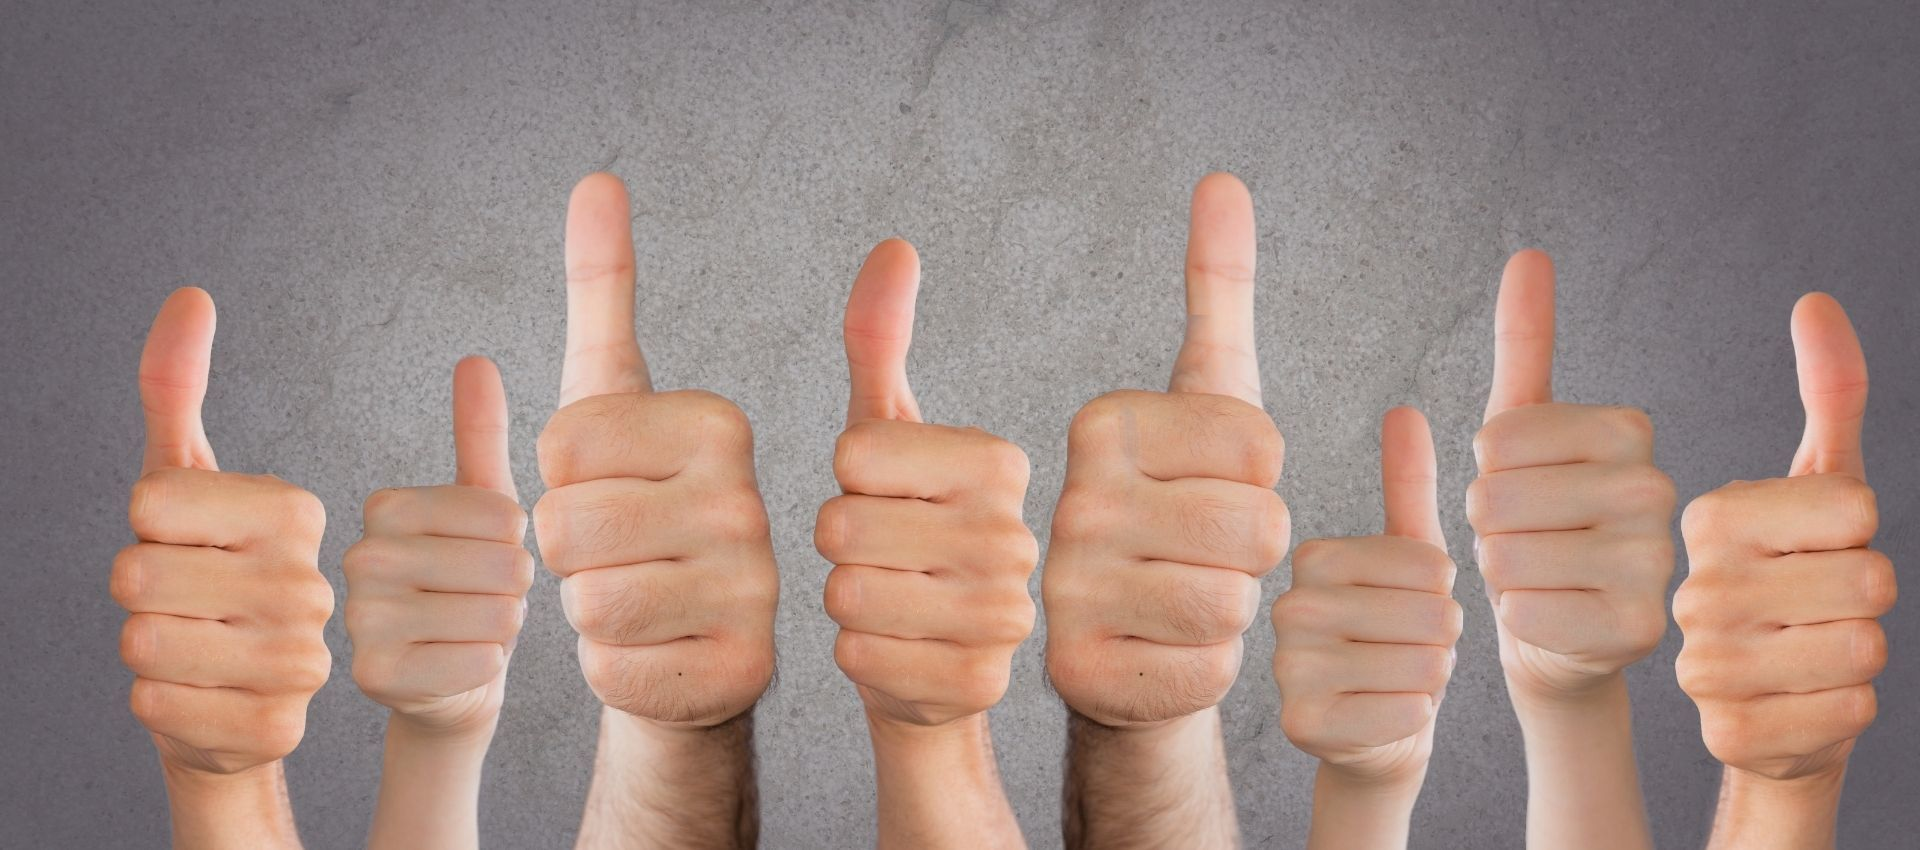 LL Blog Is Your Thumb Position Killing Your Progress